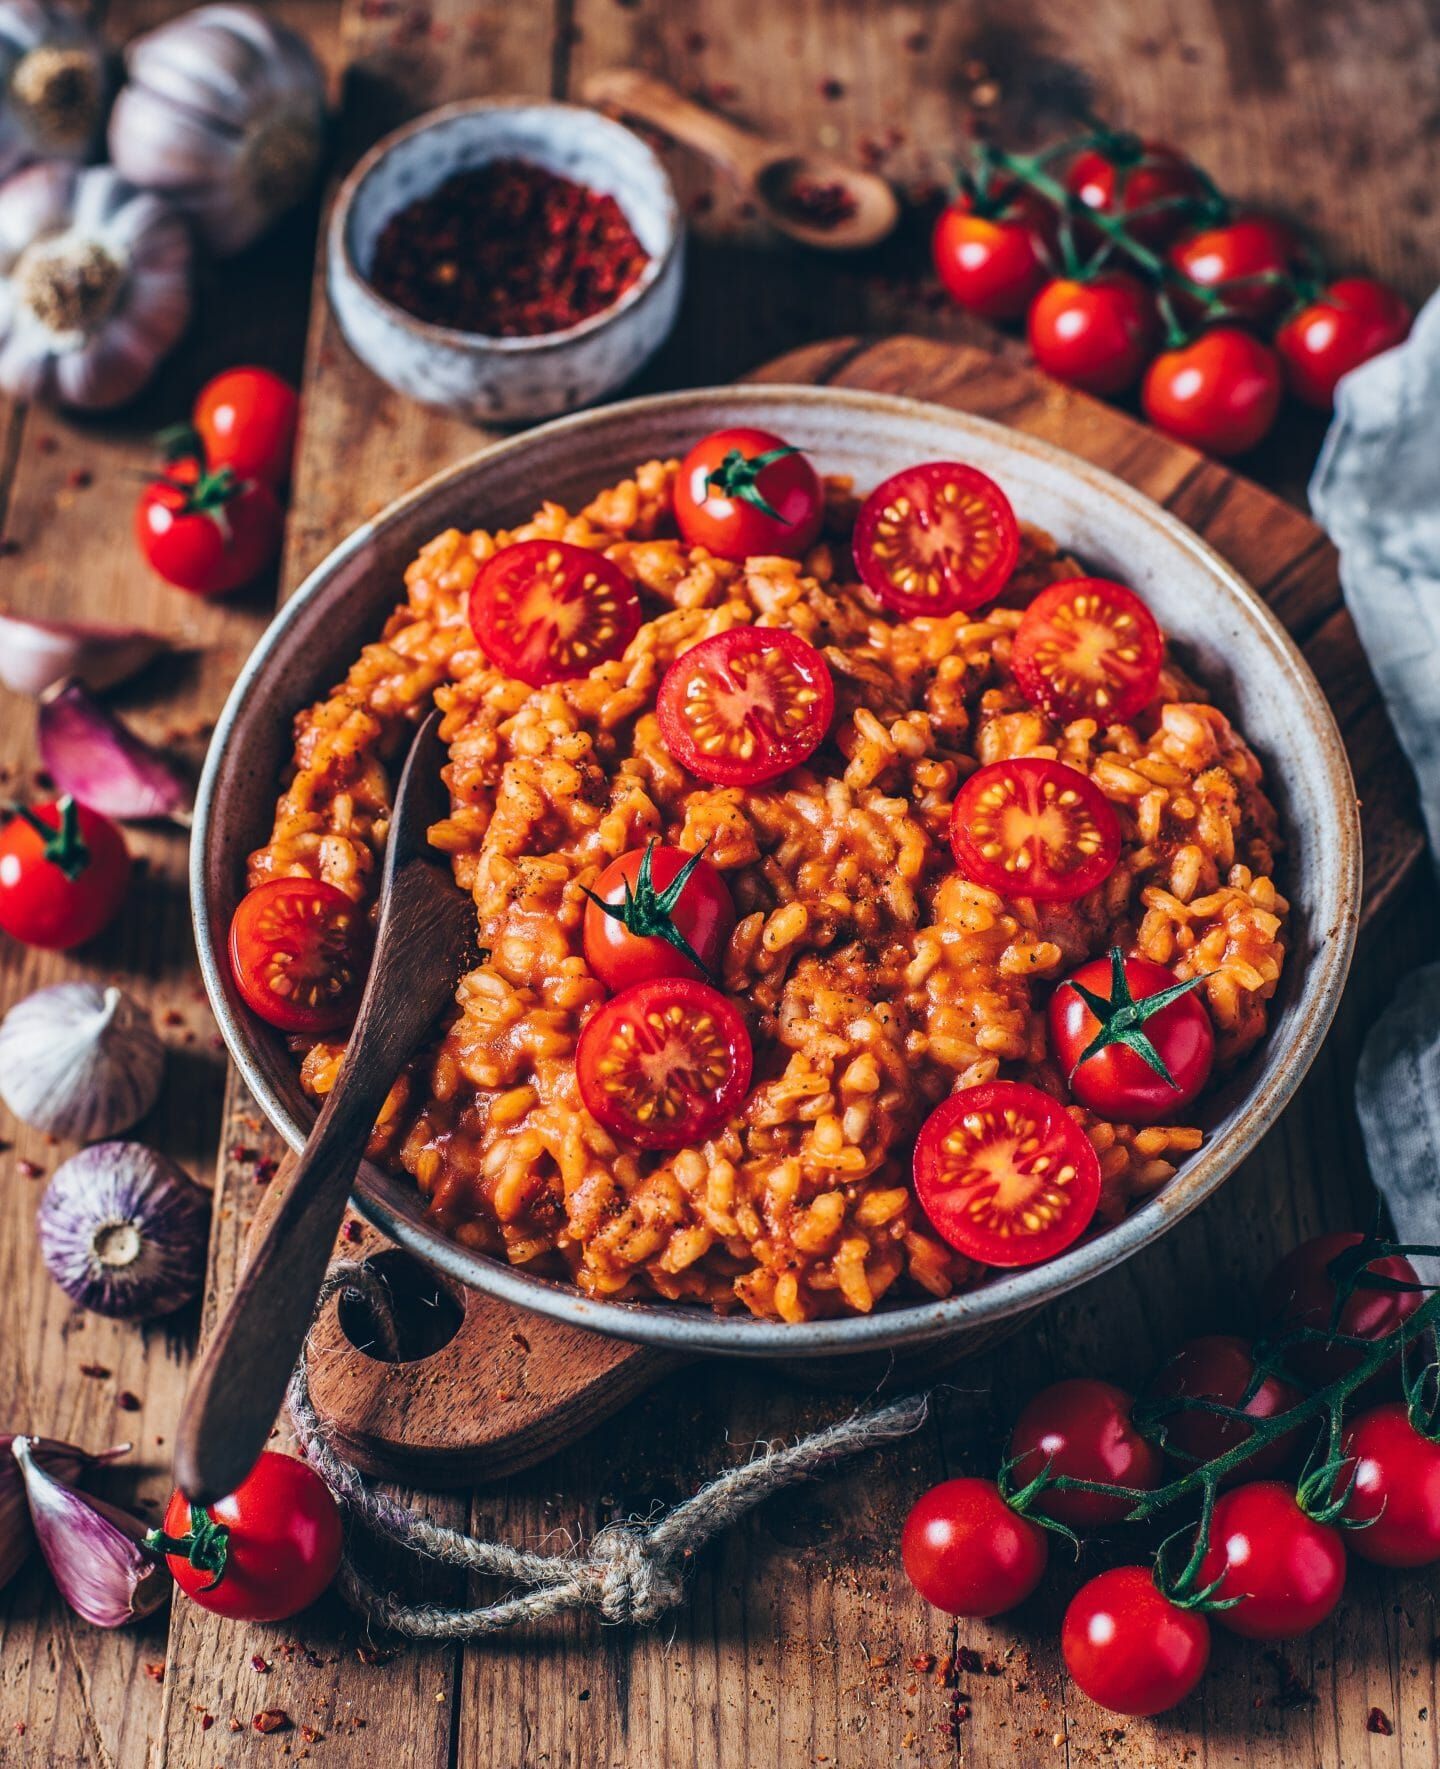 Cremiges veganes Tomaten-Risotto - Bianca Zapatka | Rezepte